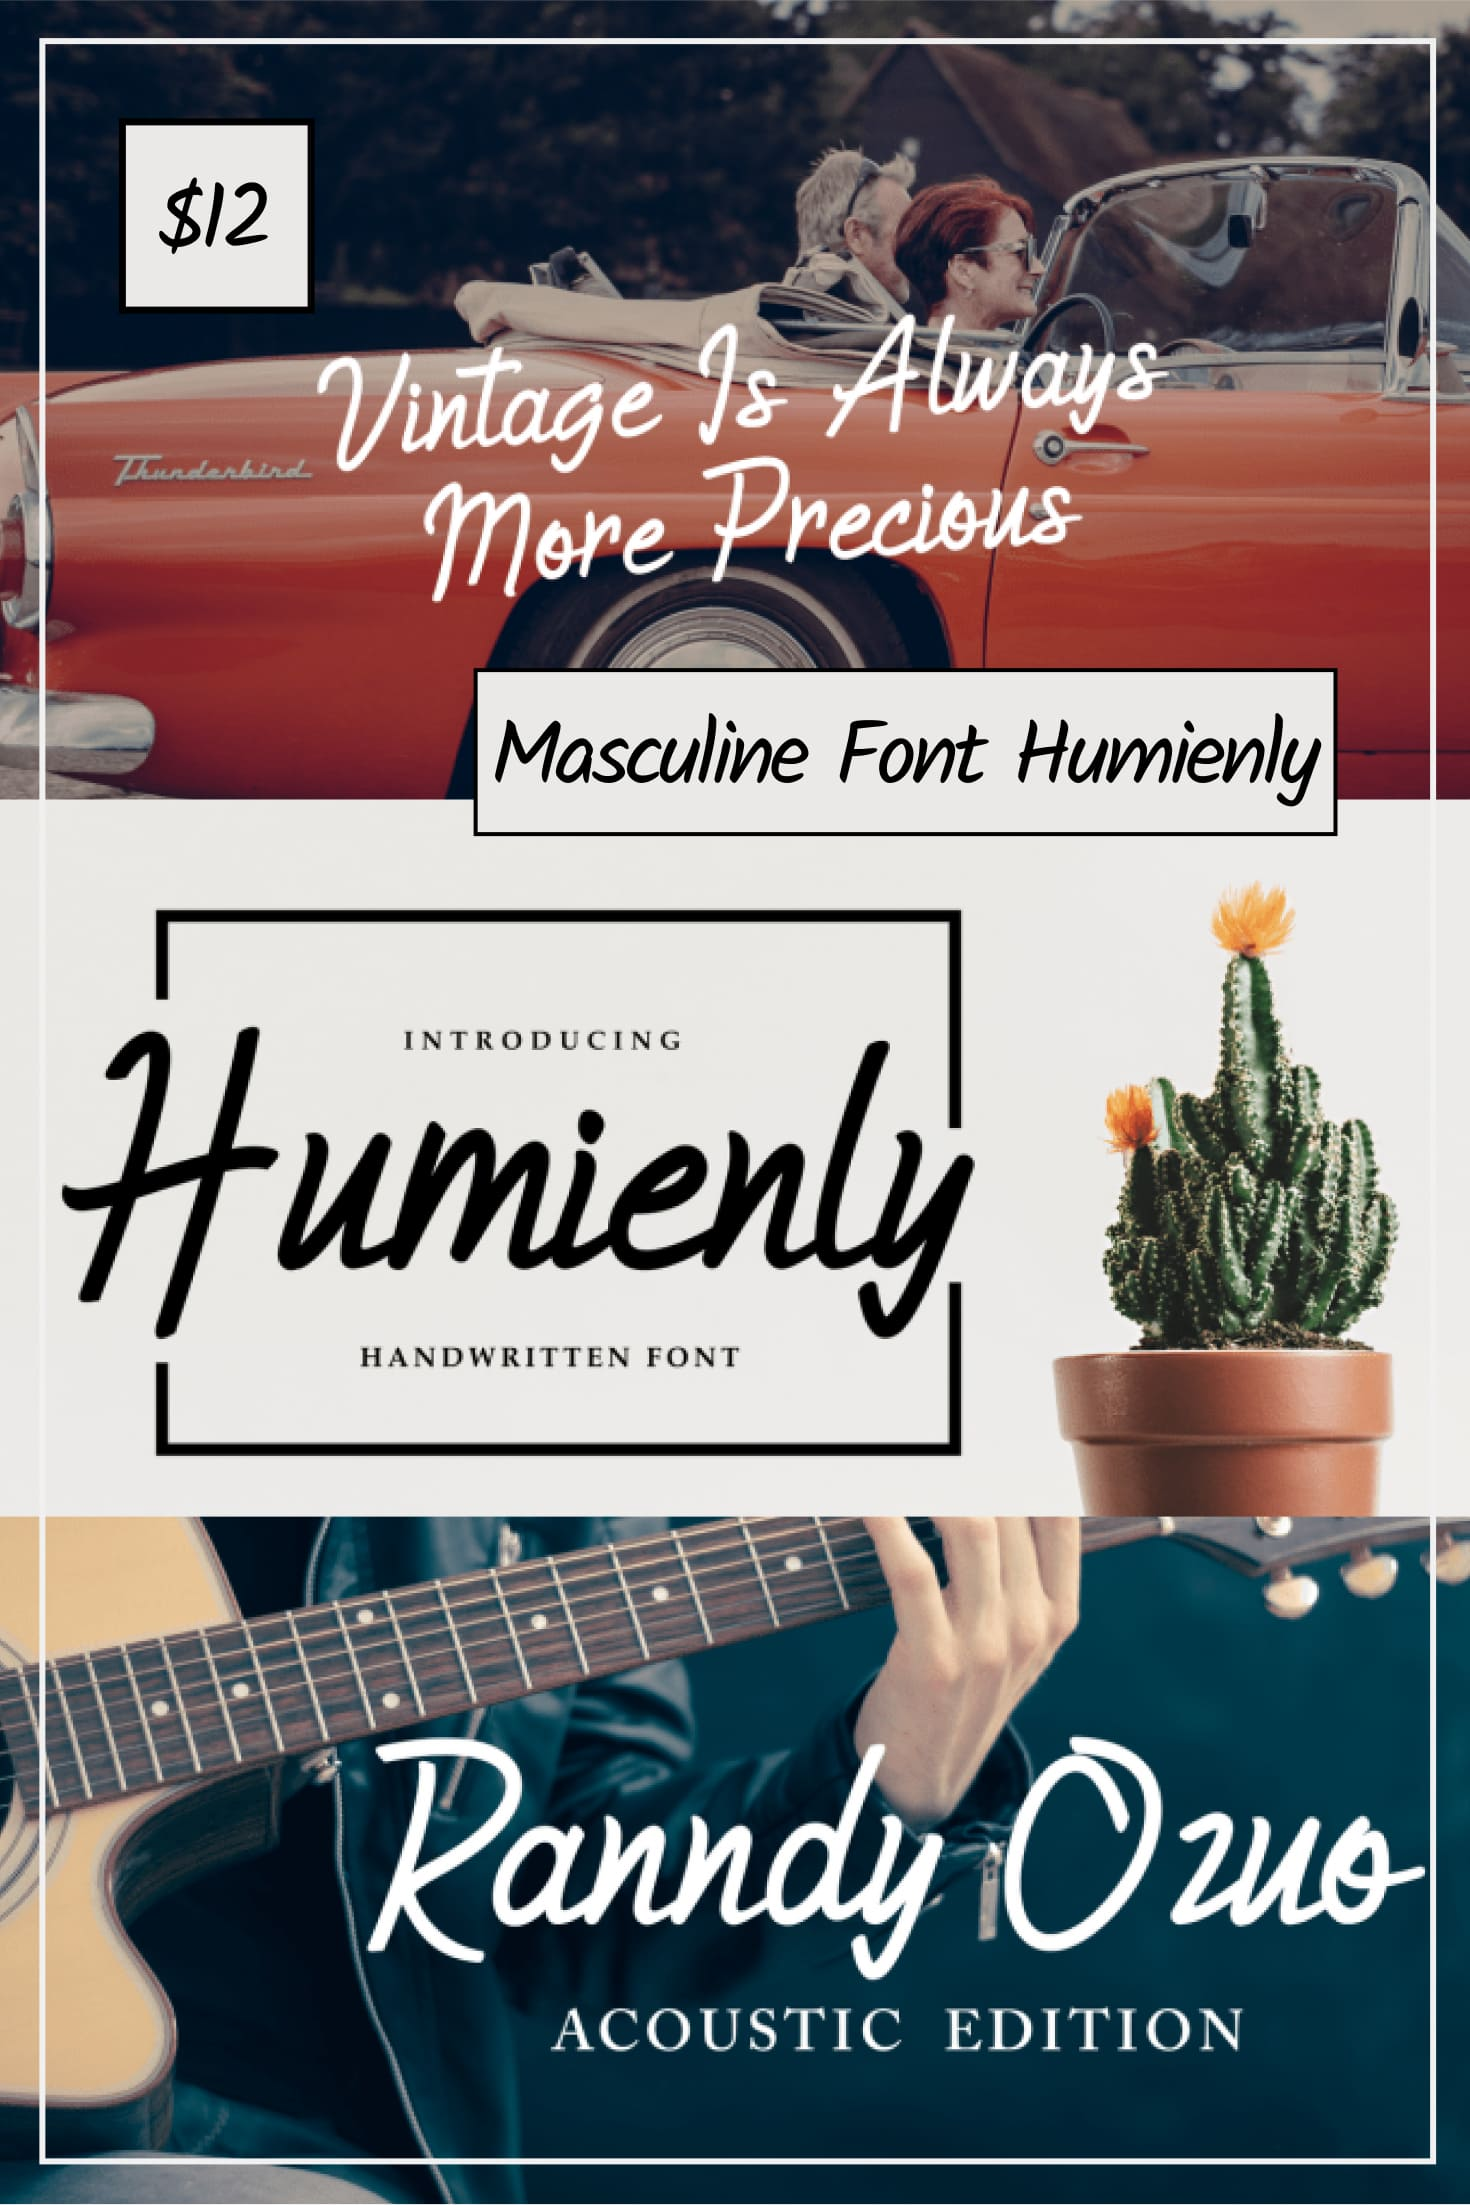 Pinterest Image: Masculine Font Humienly.